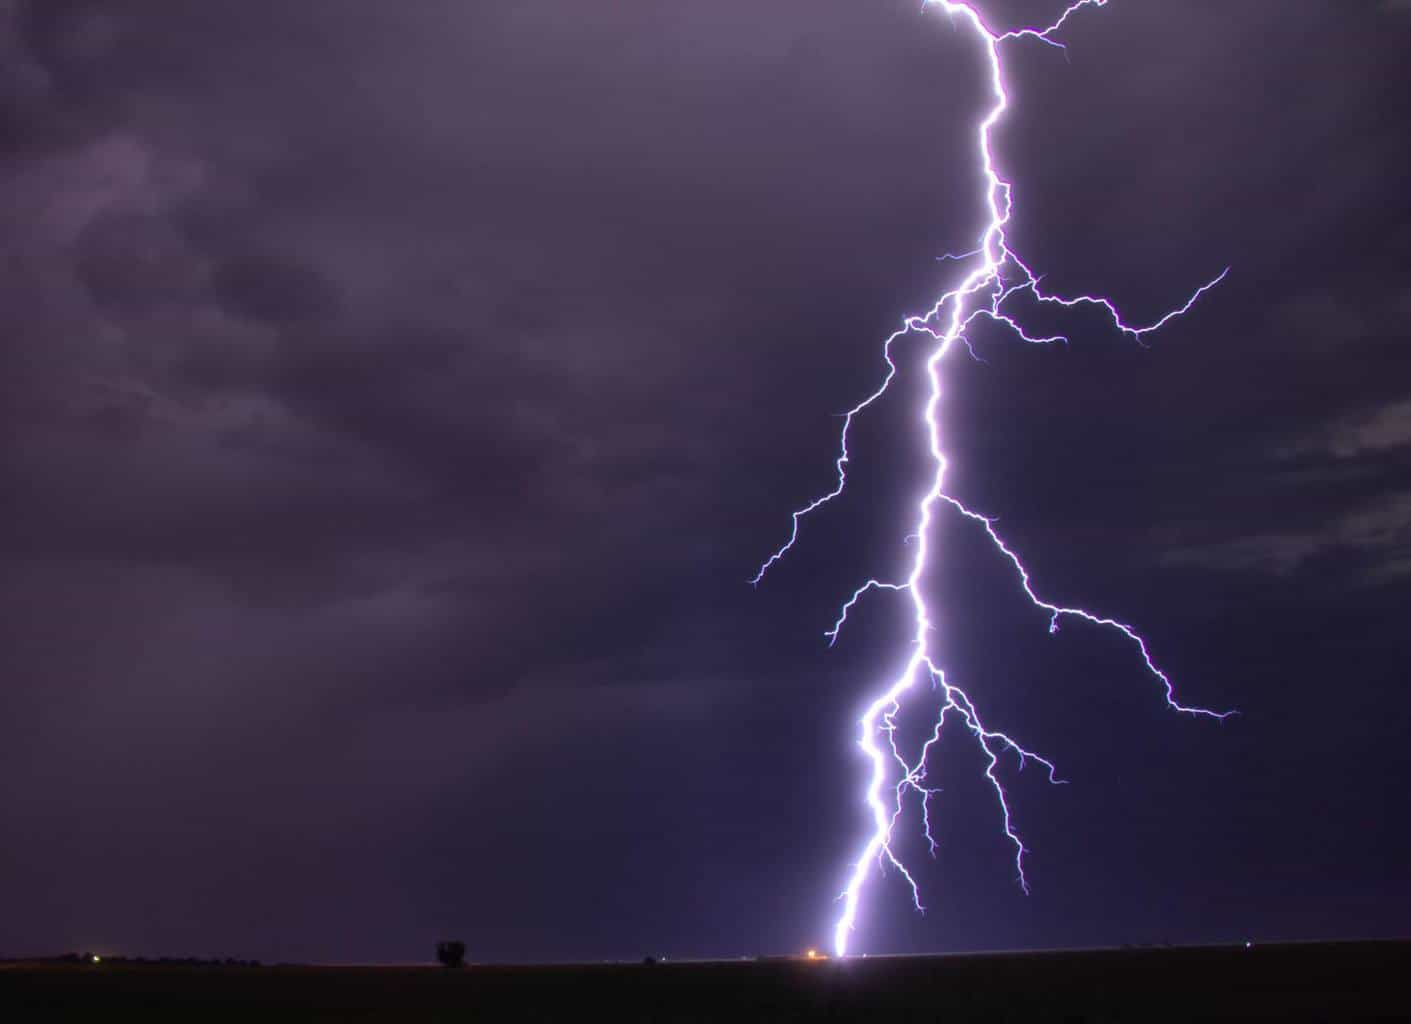 One of the lightning shots I got in August of this year. Taken 30 miles south of Lubbock Texas.